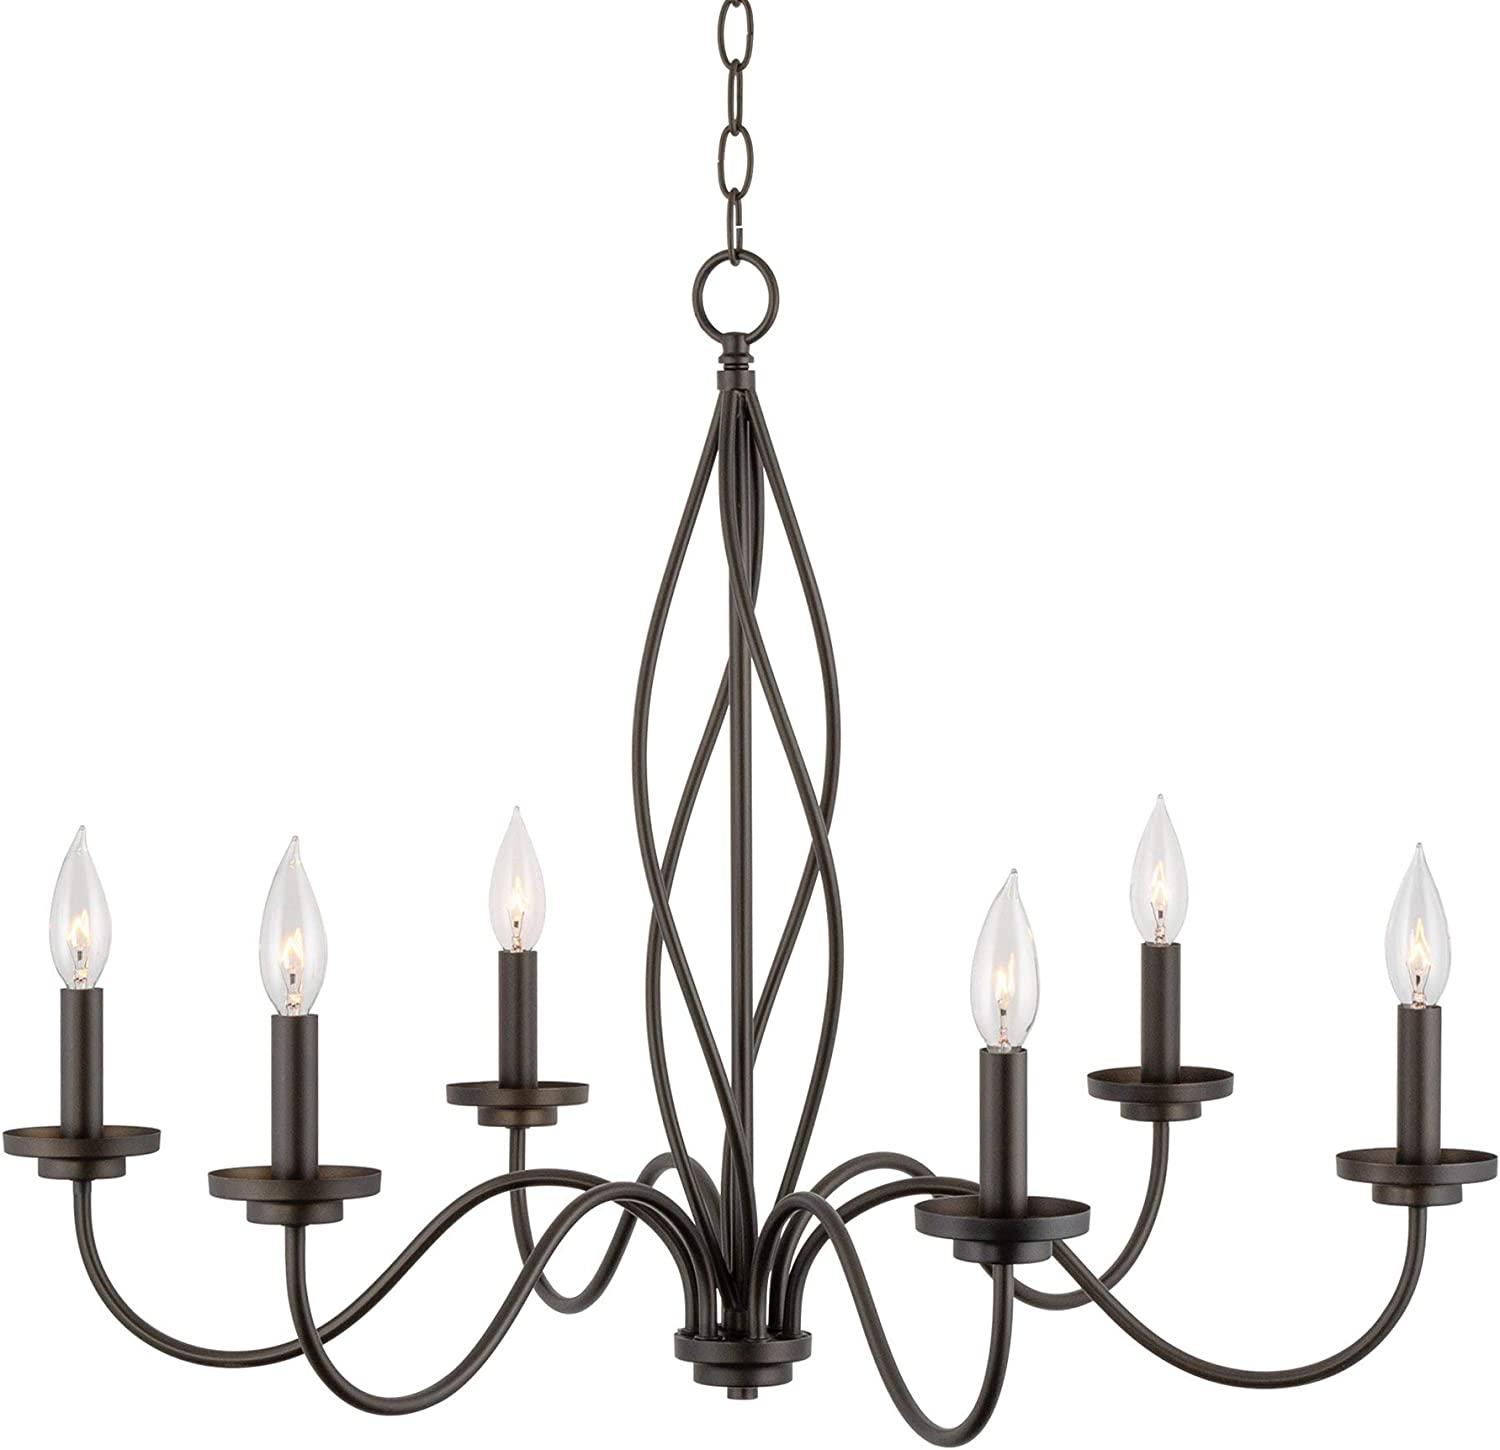 """Kira Home Chateau 29"""" 6-Light Modern Farmhouse Chandelier, Adjustable Hanging Height, Oil Rubbed Bronze Finish"""